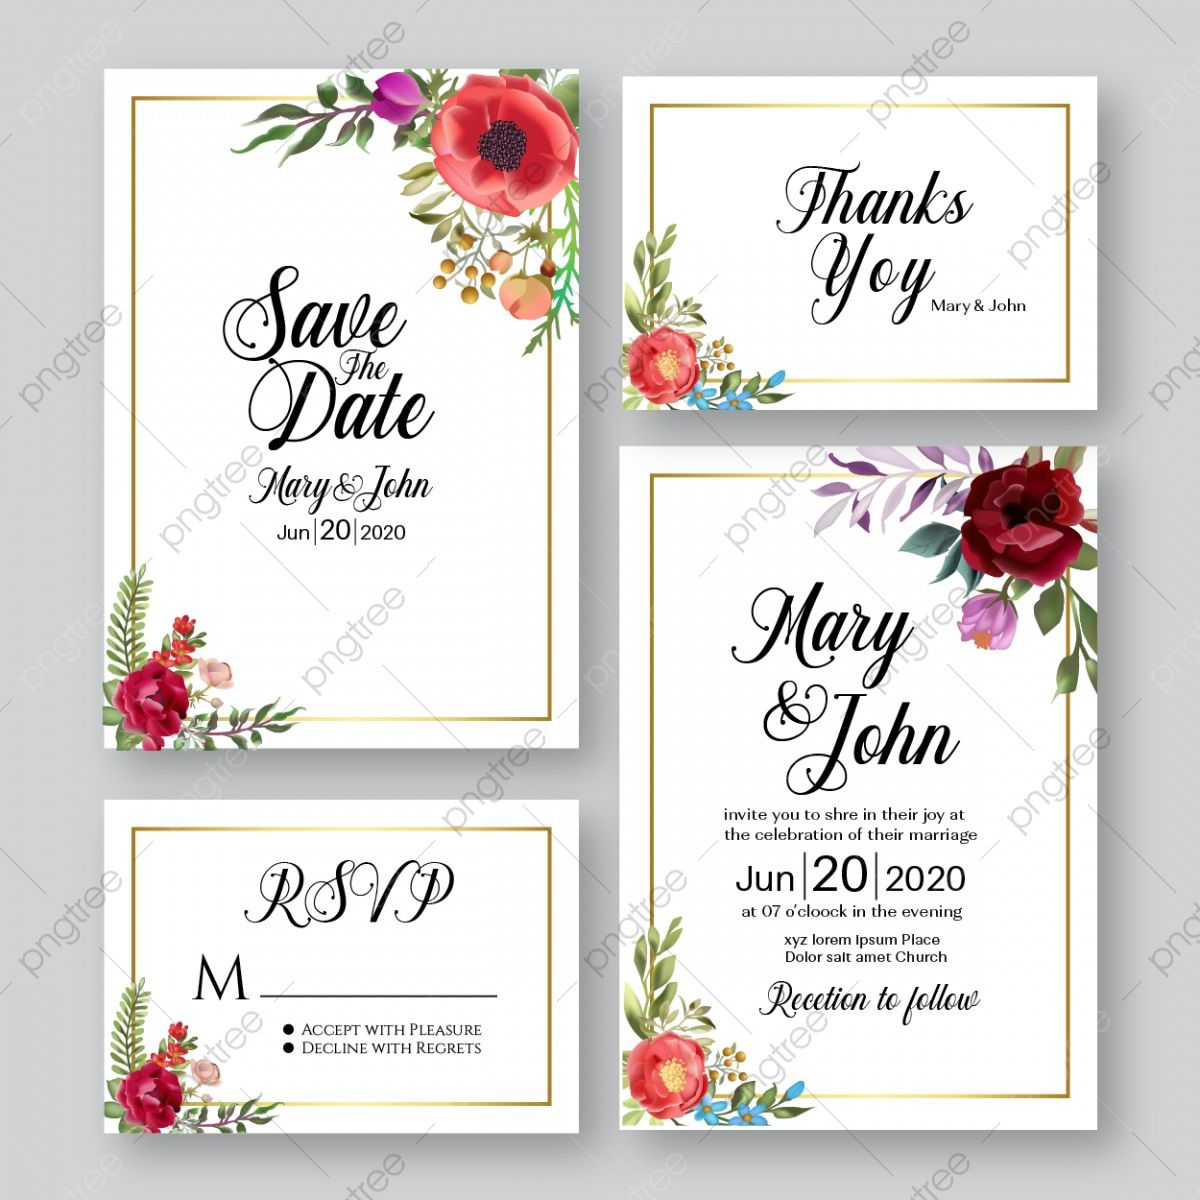 009 Awesome Free Download Invitation Card Design Inspiration  Birthday Party Blank Wedding Template SoftwareFull